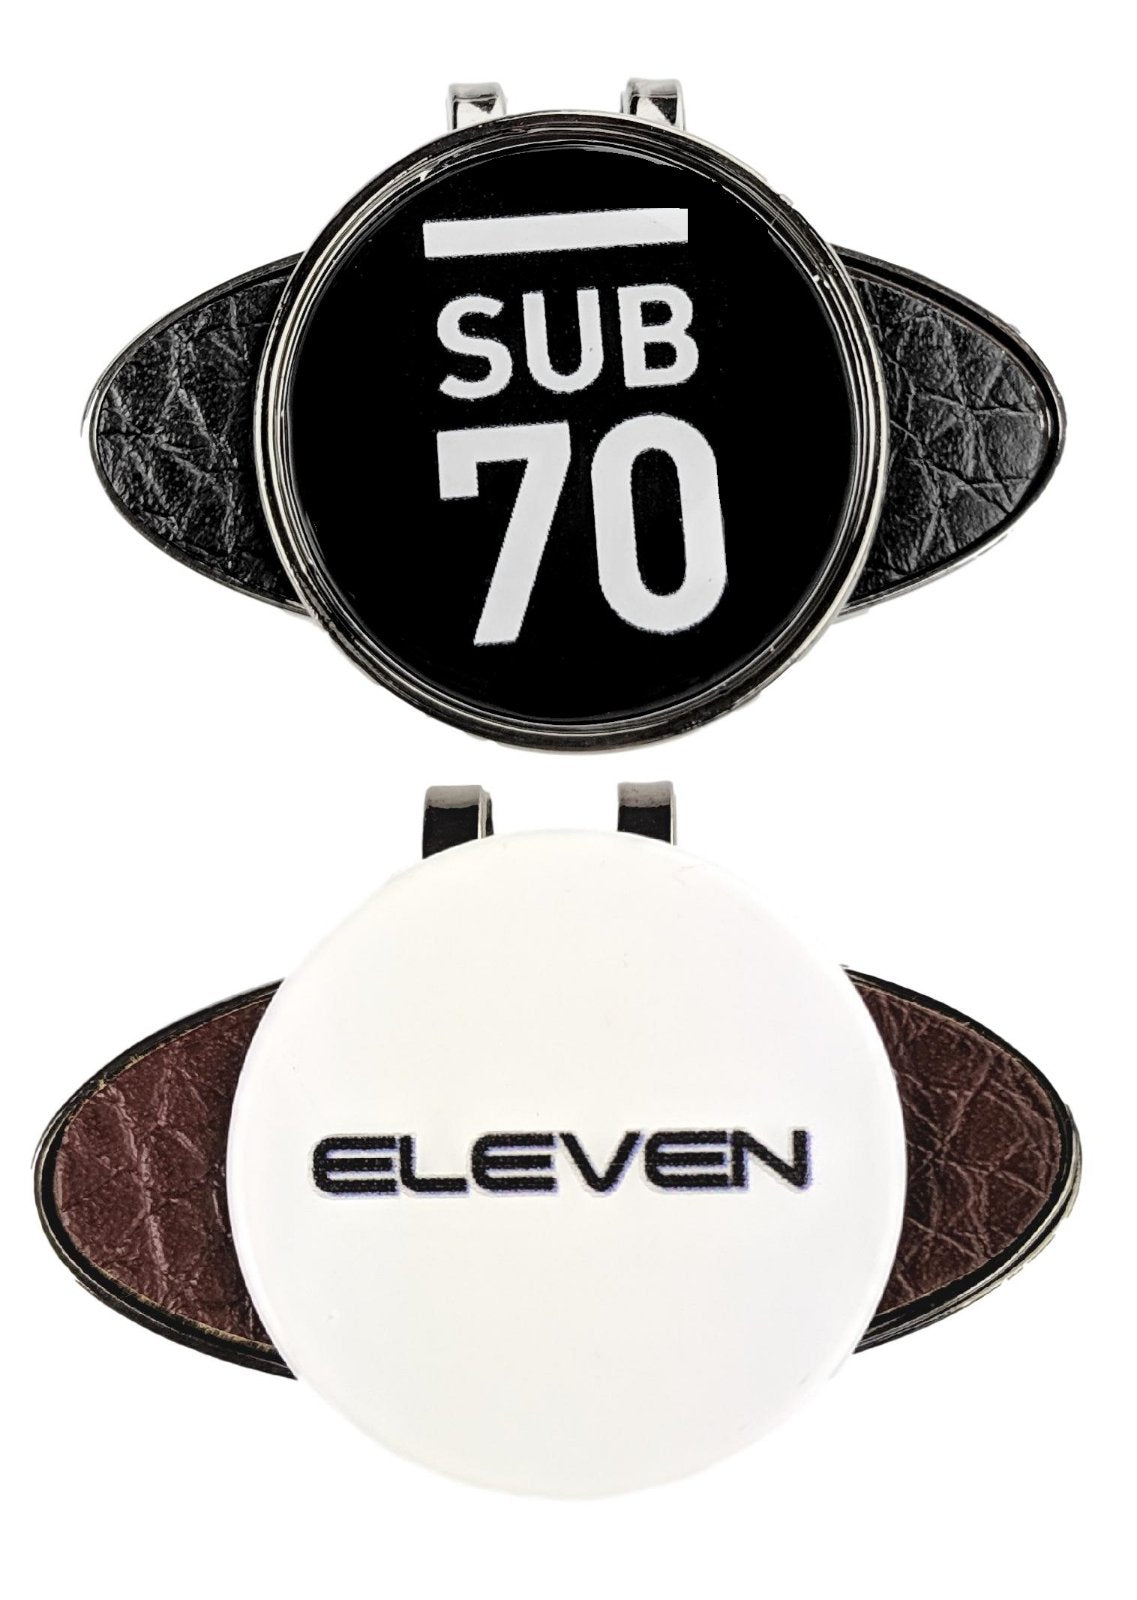 b2600e3ccab New Eleven Sub70 Golf Tour Hat Cap Clip With Magnetic Ball Marker - Just  Golf Online